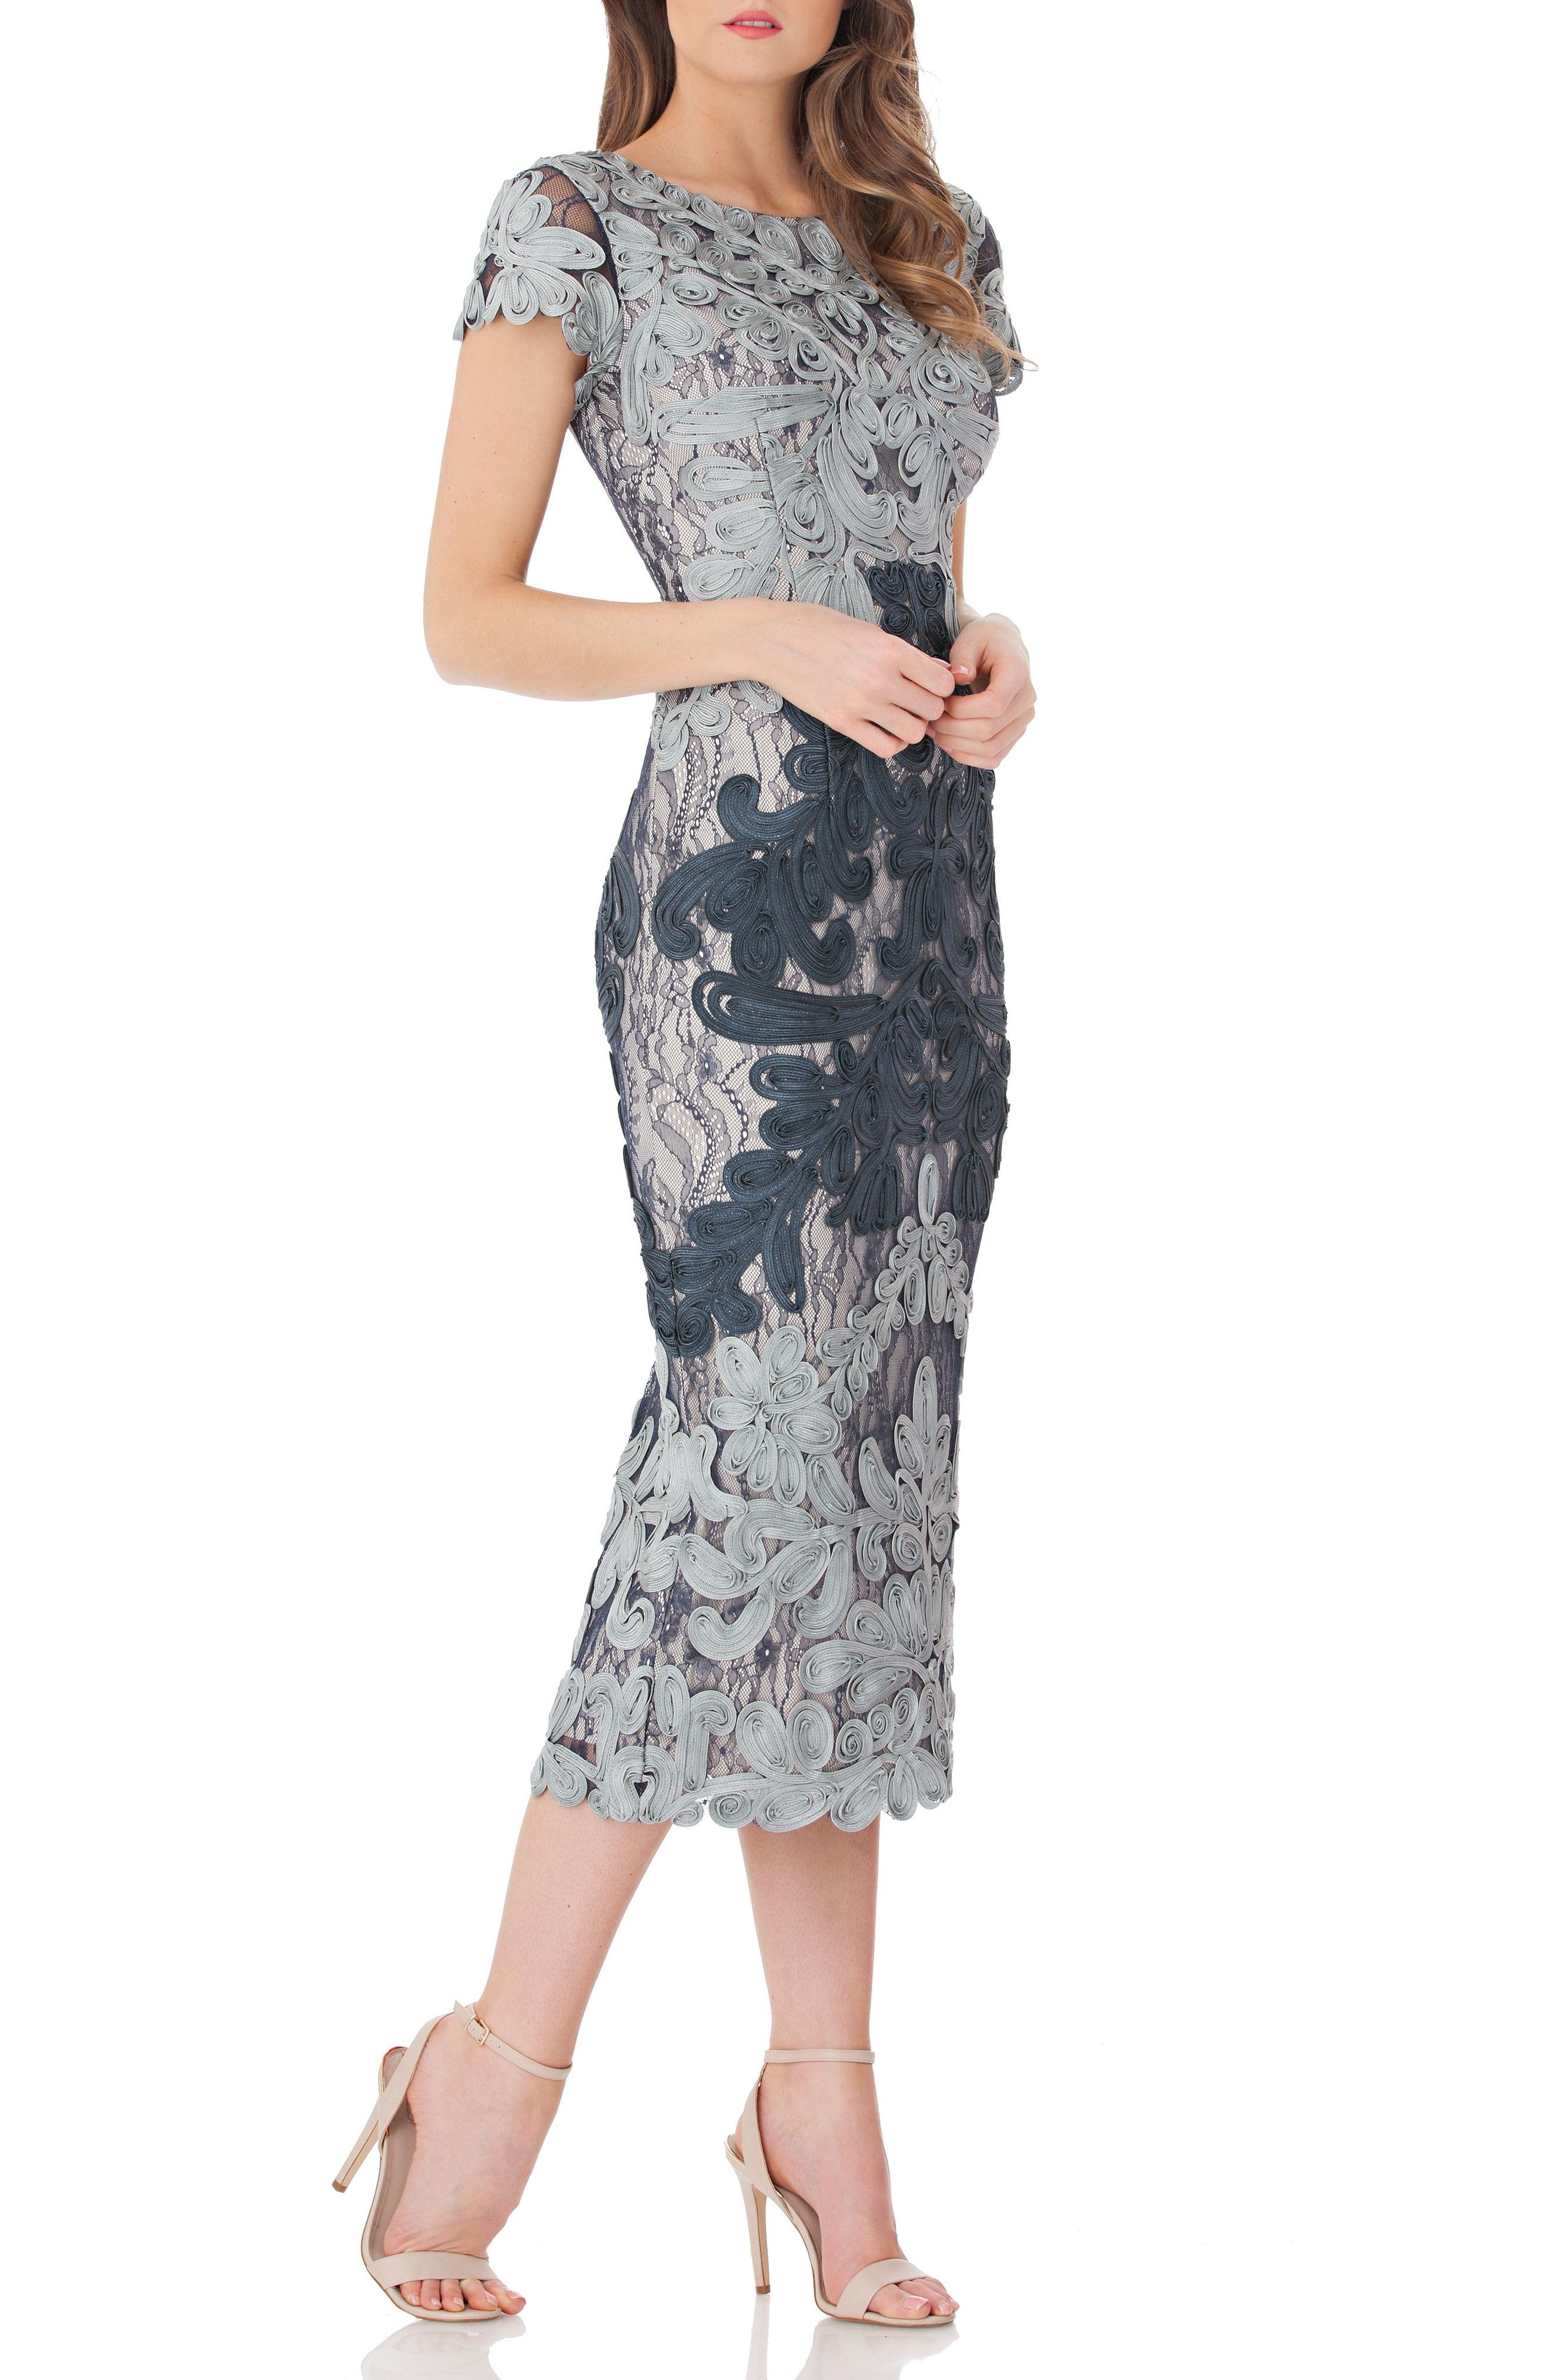 Guest of wedding dresses spring  What to Wear to a May Wedding  Wedding guest dresses Spring and